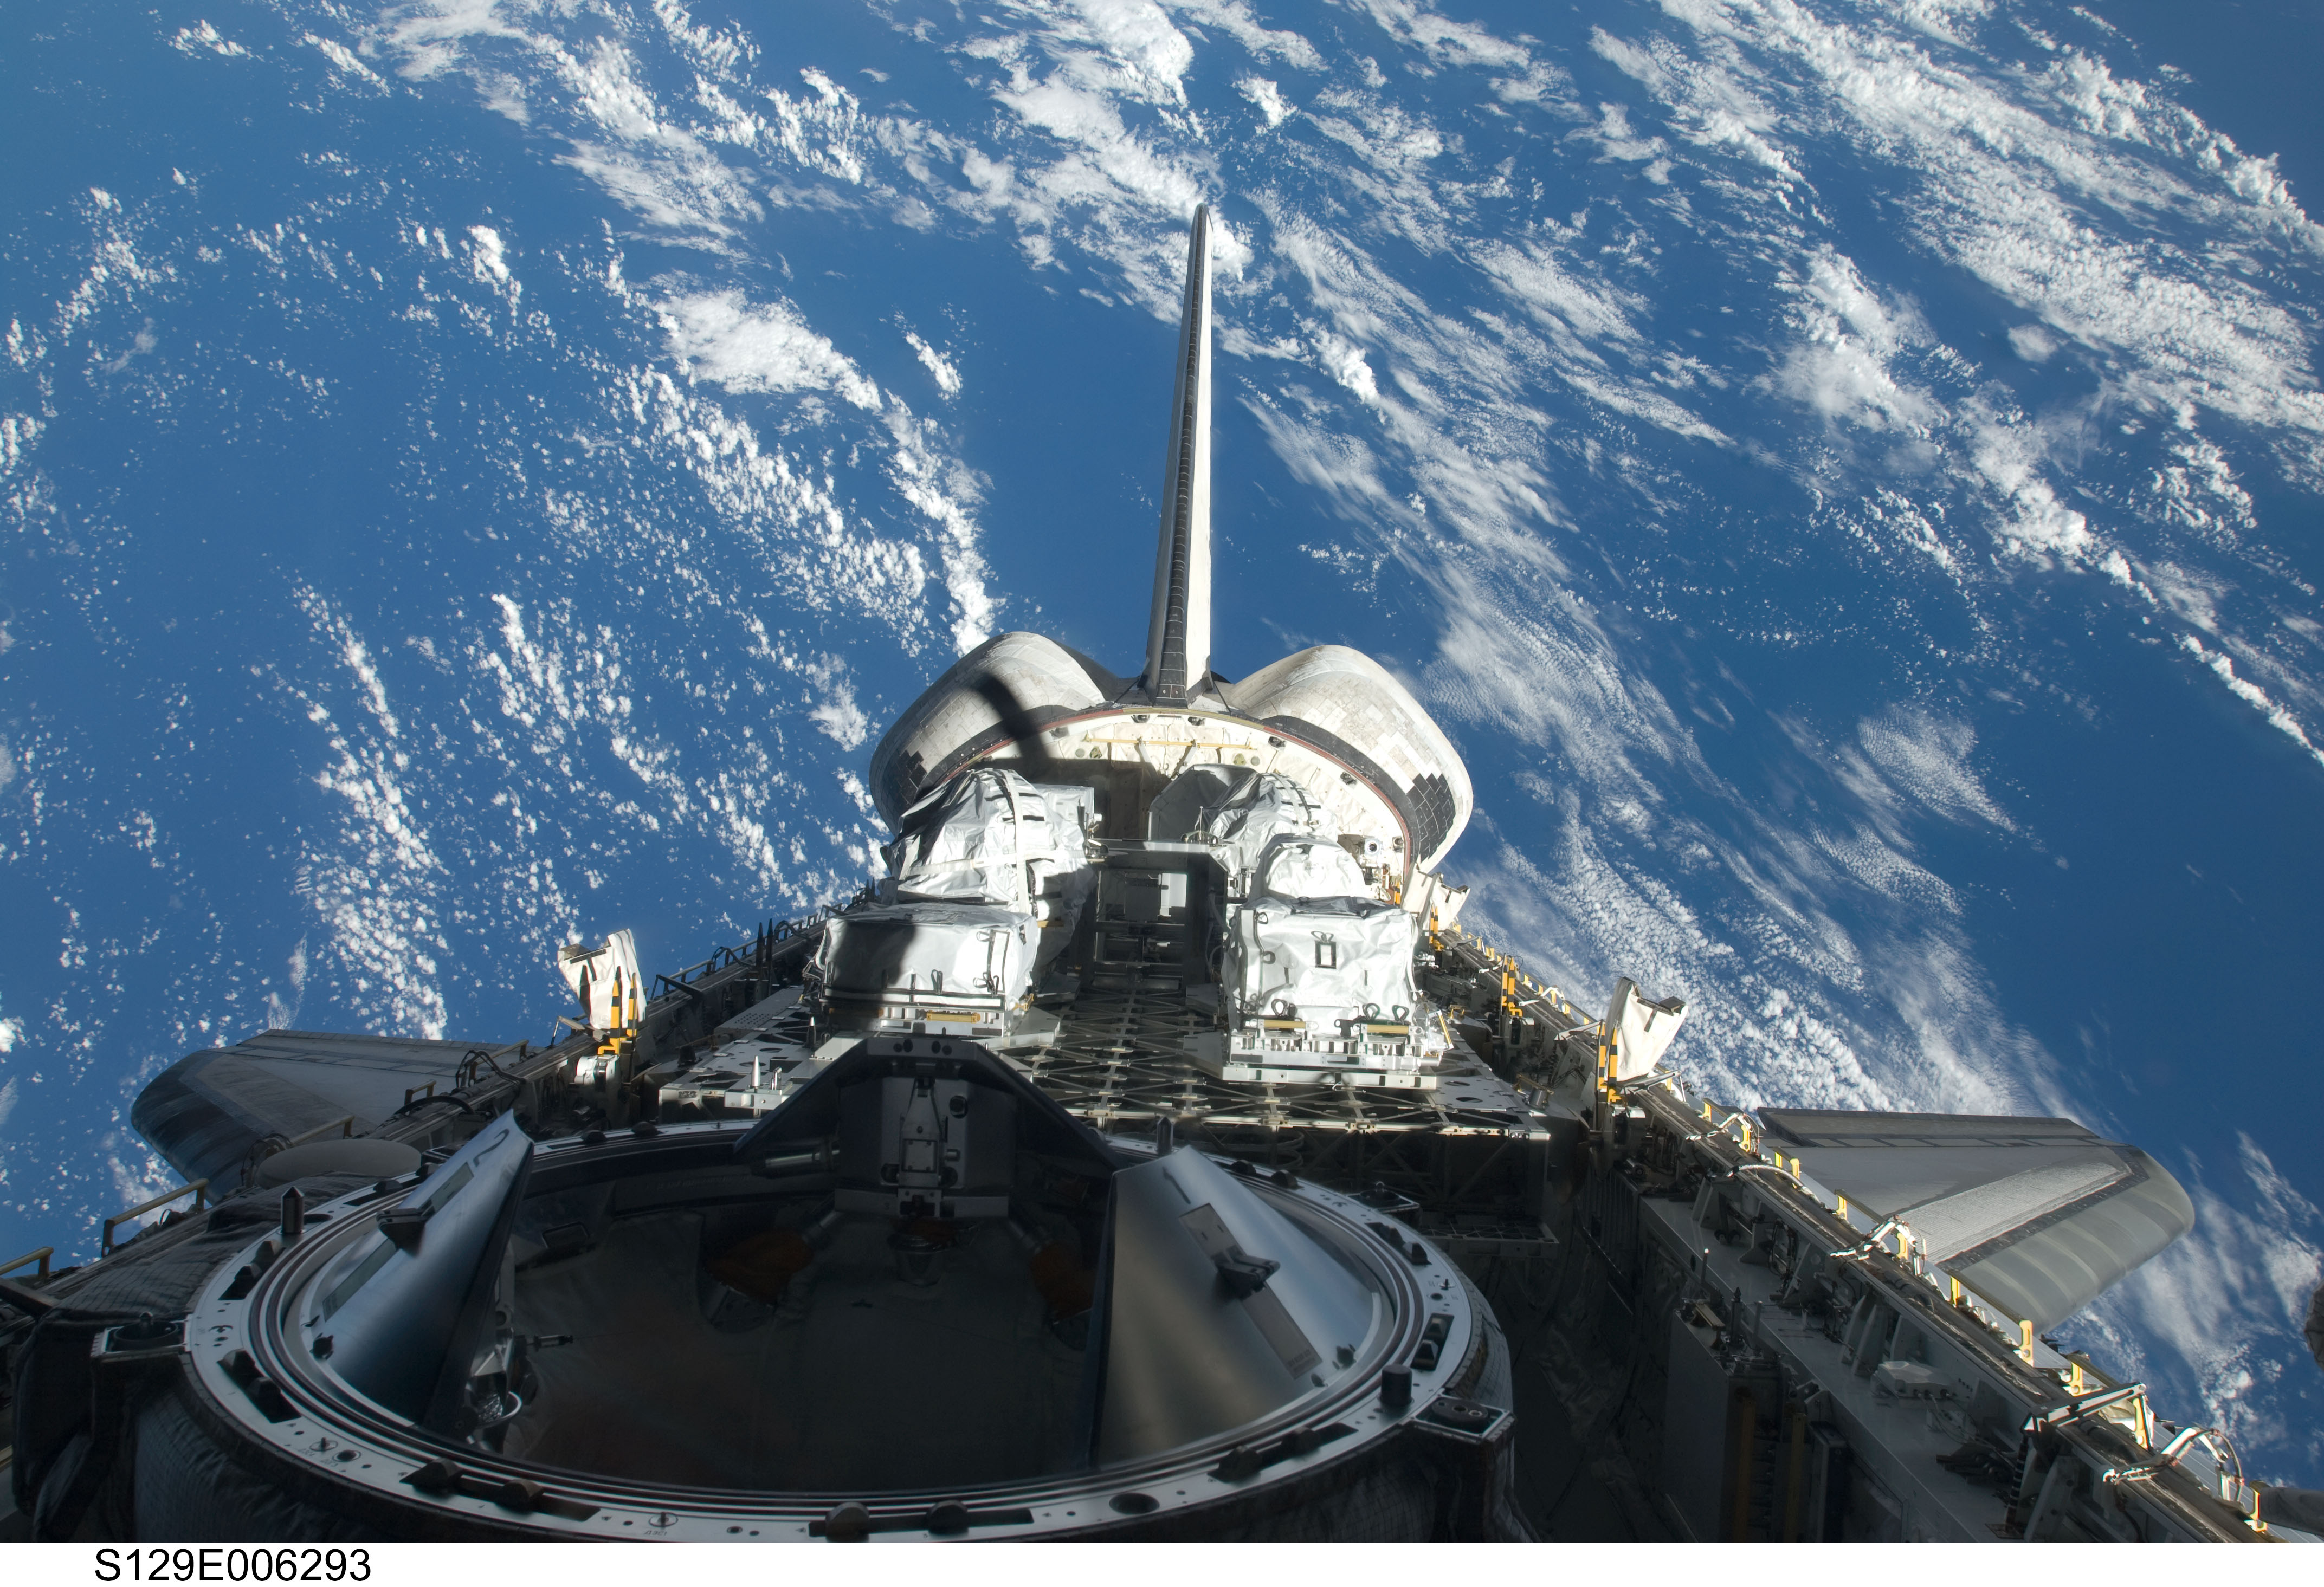 NASA Nostalgia: 42 Favorite Photos of the Space Shuttle Atlantis